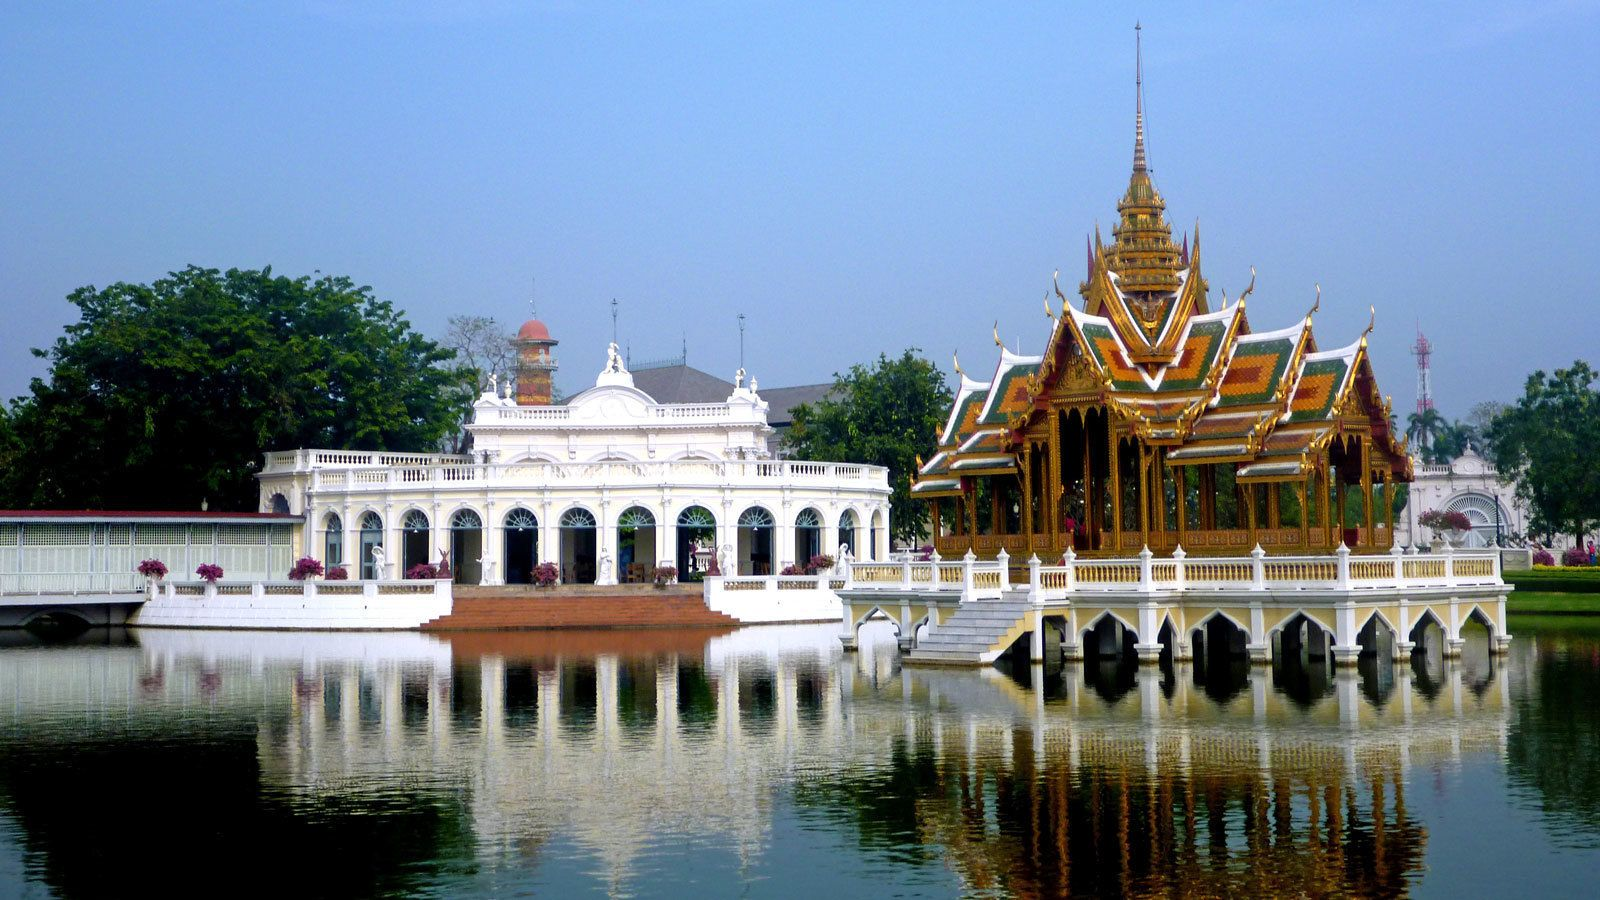 traditional architecture along a large pond in Thailand